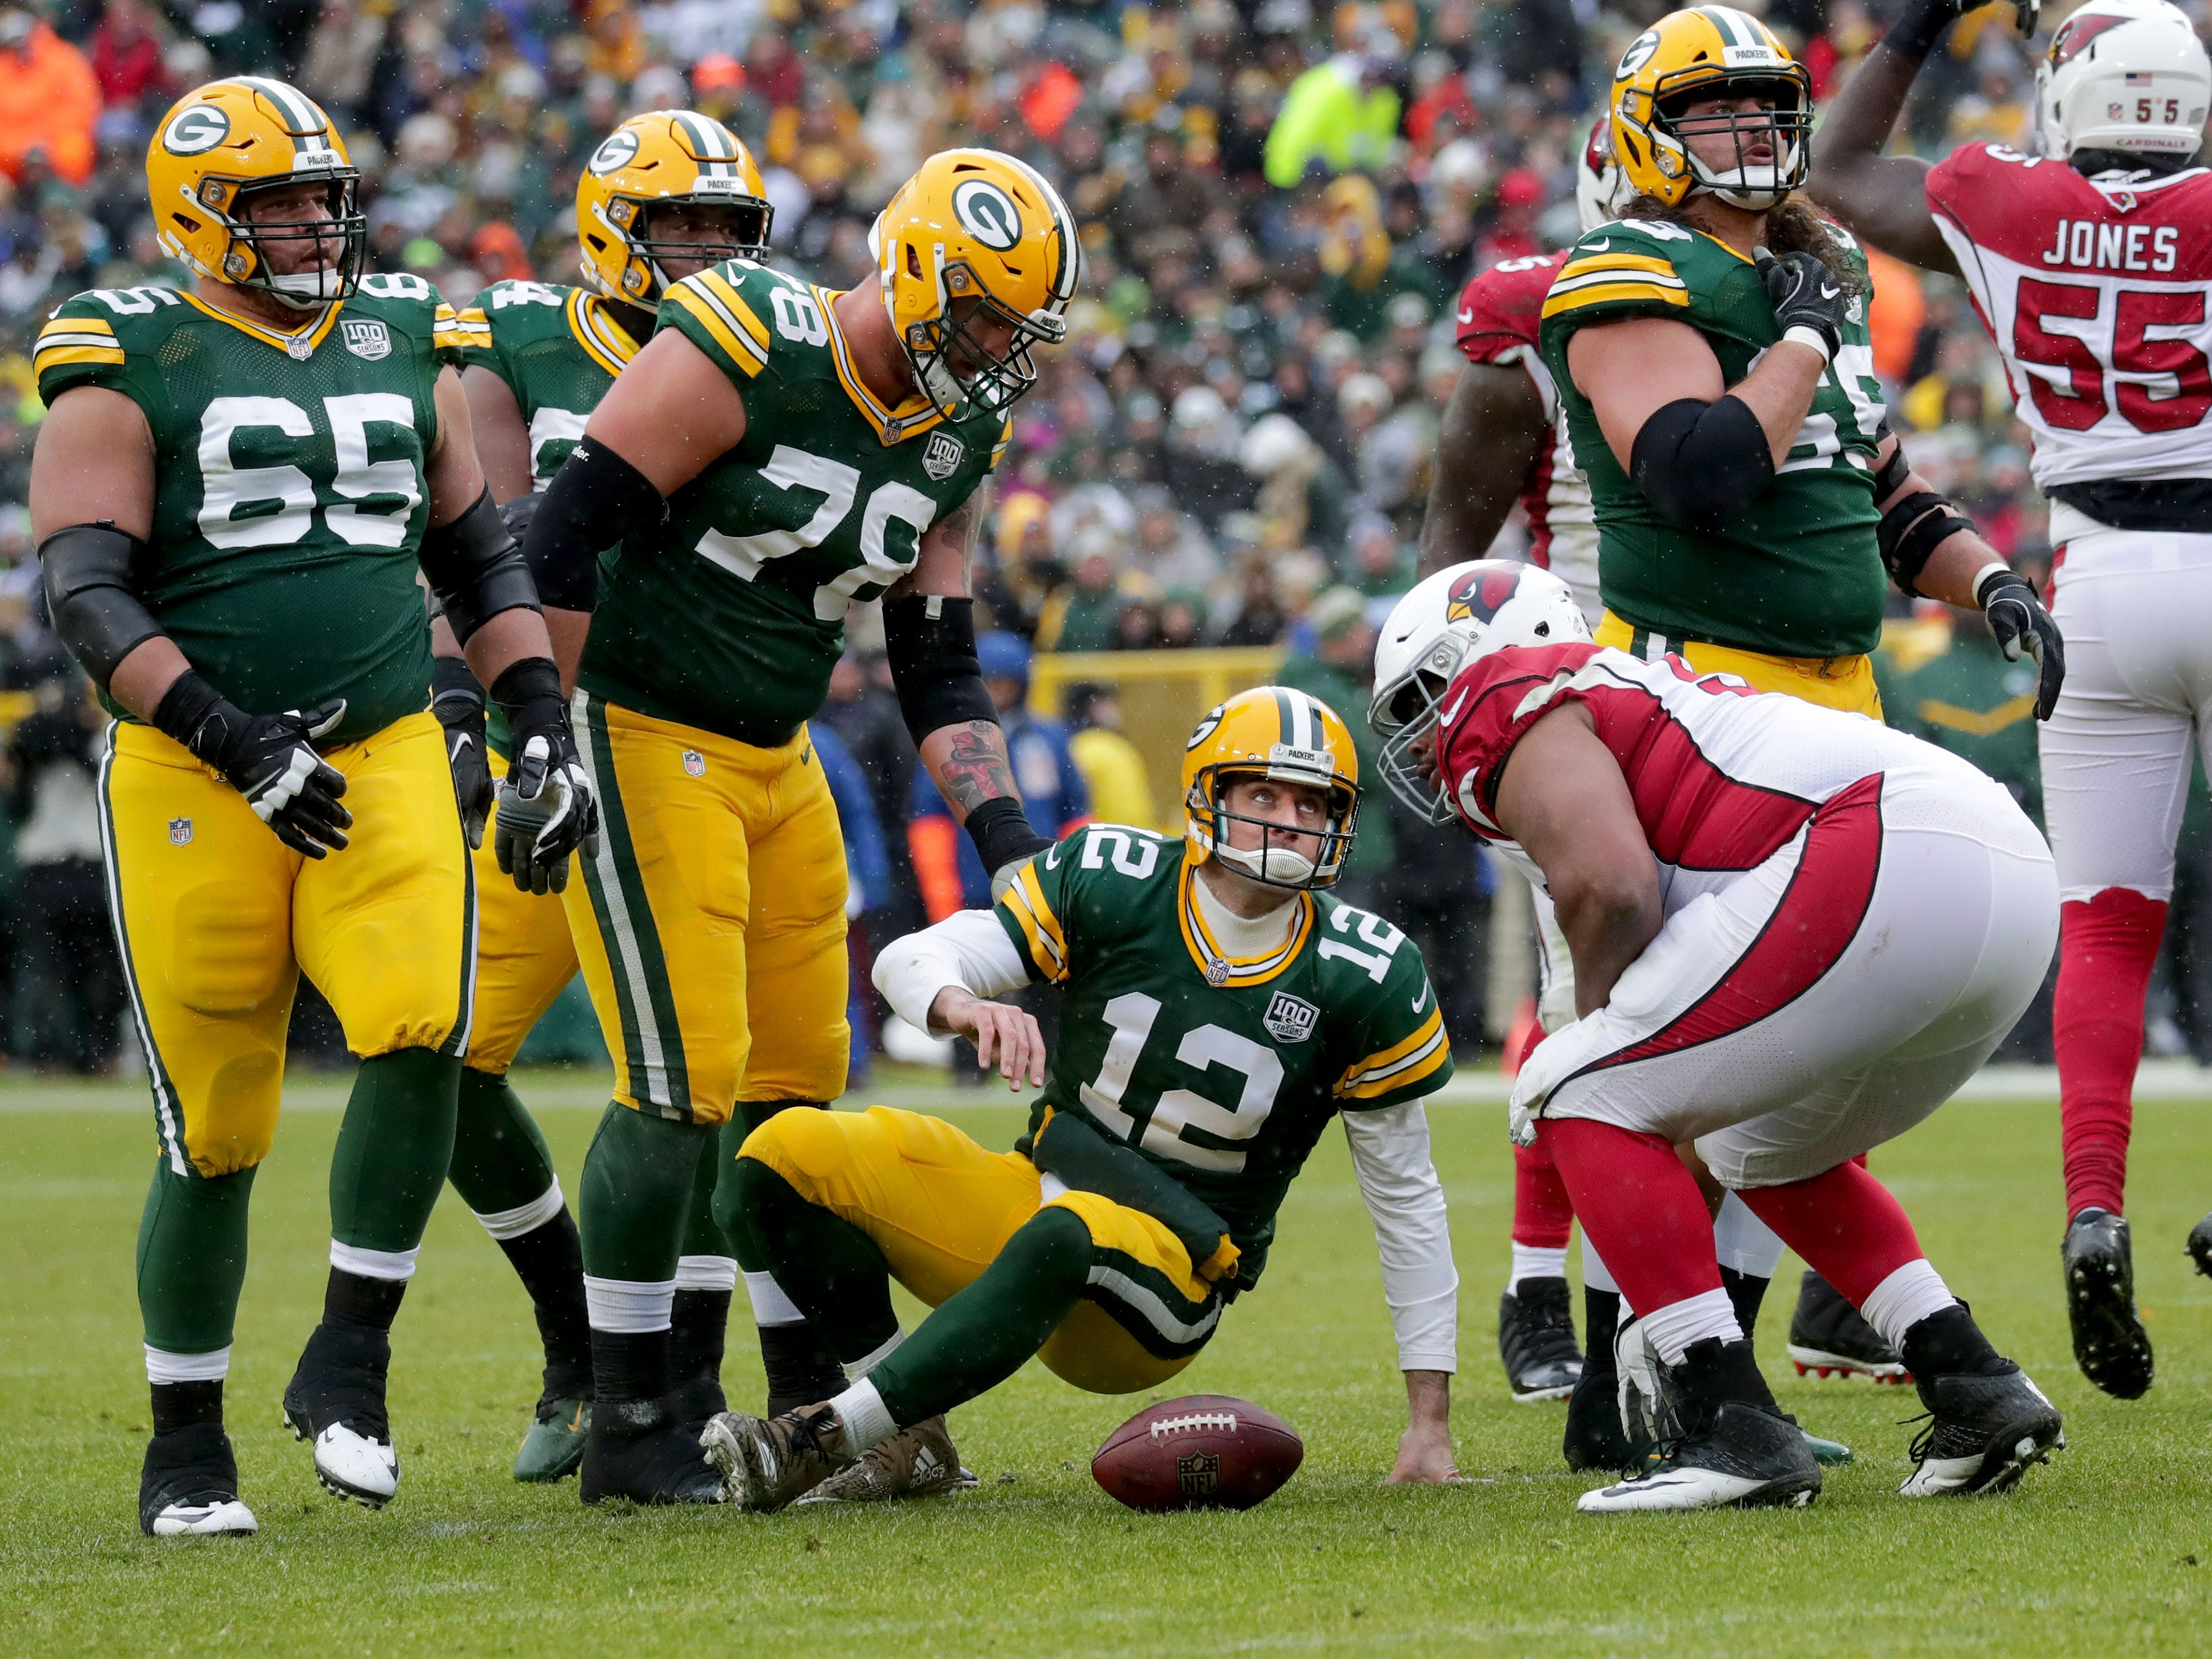 Green Bay Packers quarterback Aaron Rodgers (12) gets up after being sacked during the 2nd quarter of Green Bay Packers game against the Arizona Cardinals game Sunday, December 2, 2018 at Lambeau Field in Green Bay, Wis. Mike De Sisti / USA TODAY NETWORK-Wis